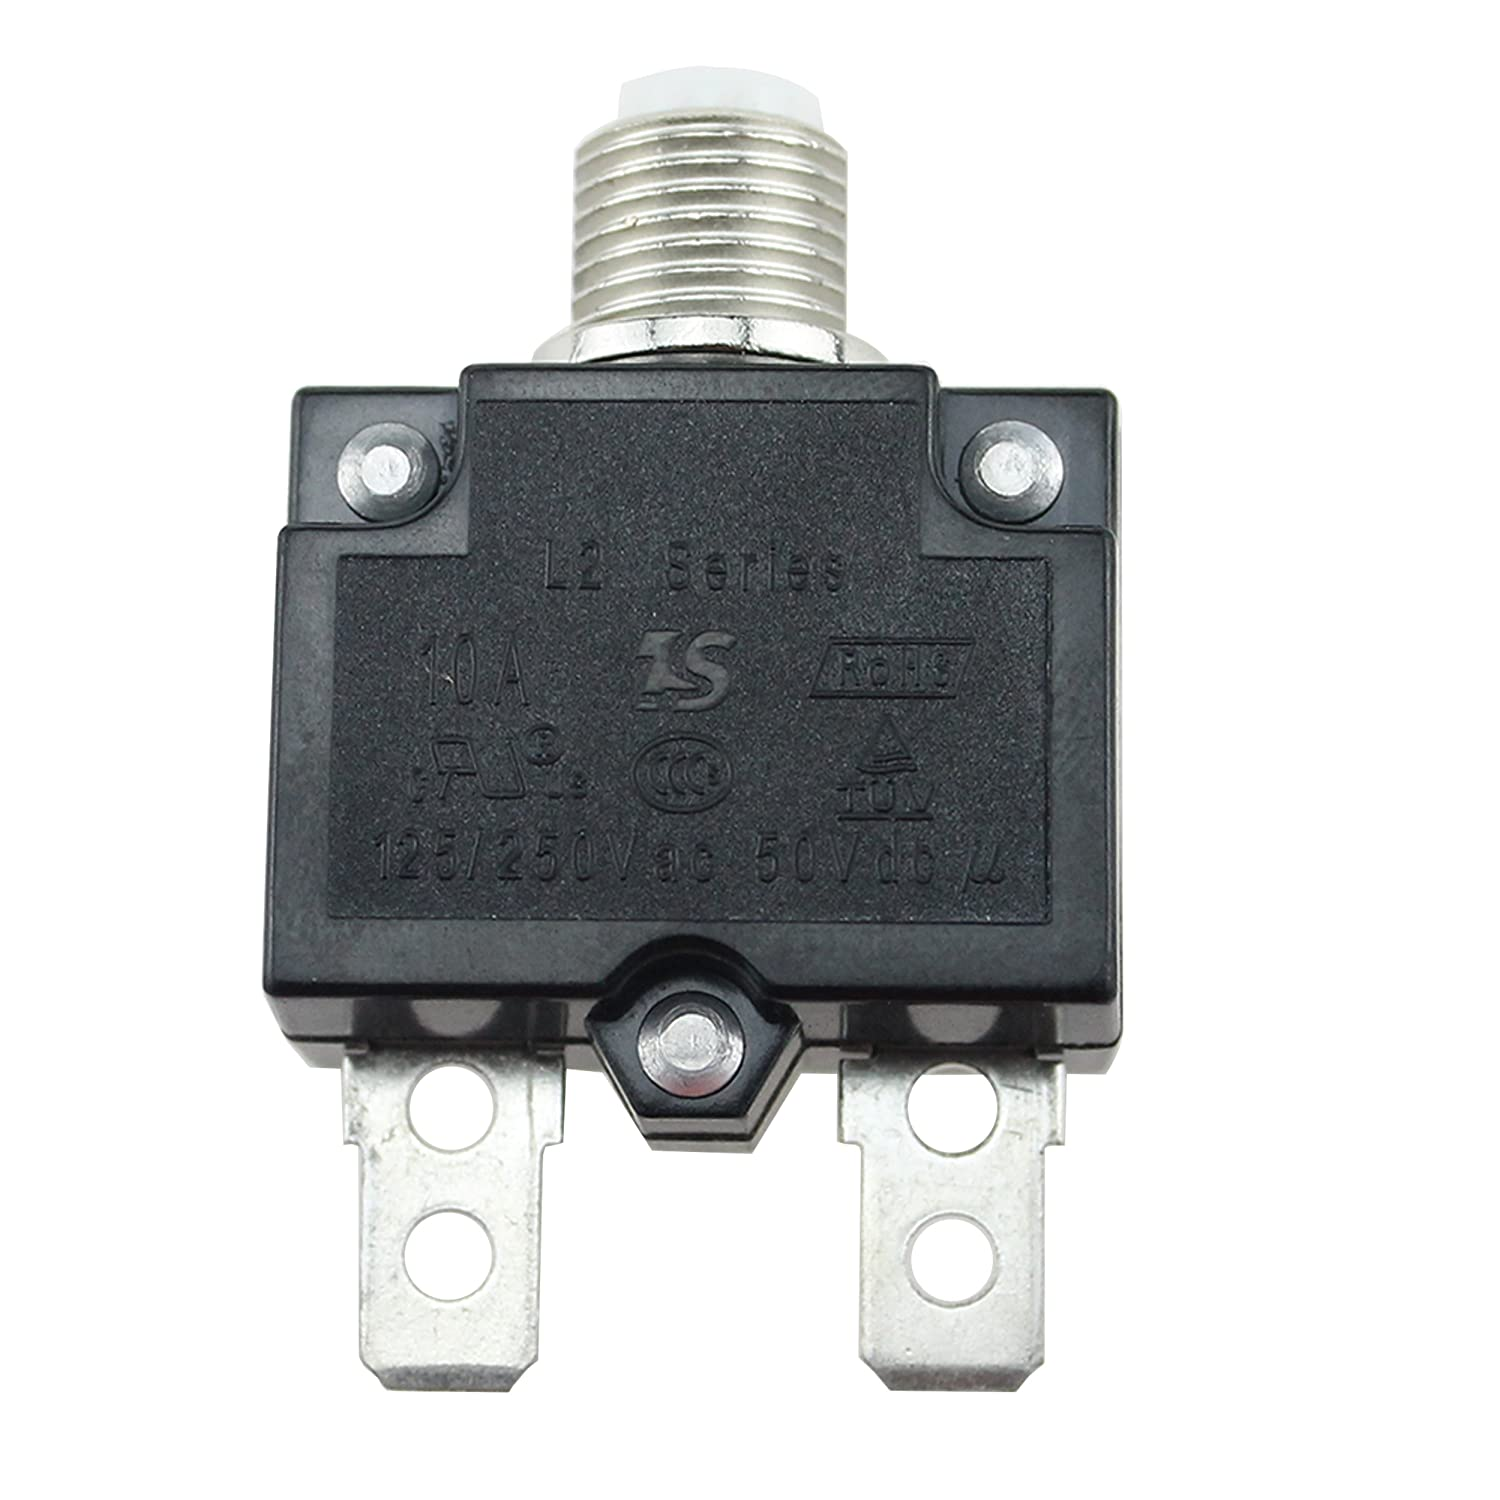 IZTOSS 15Amp Circuit Breakers with manual reset Waterproof Button transparent Cover DC50V AC125-250V with Quick Connect Terminals